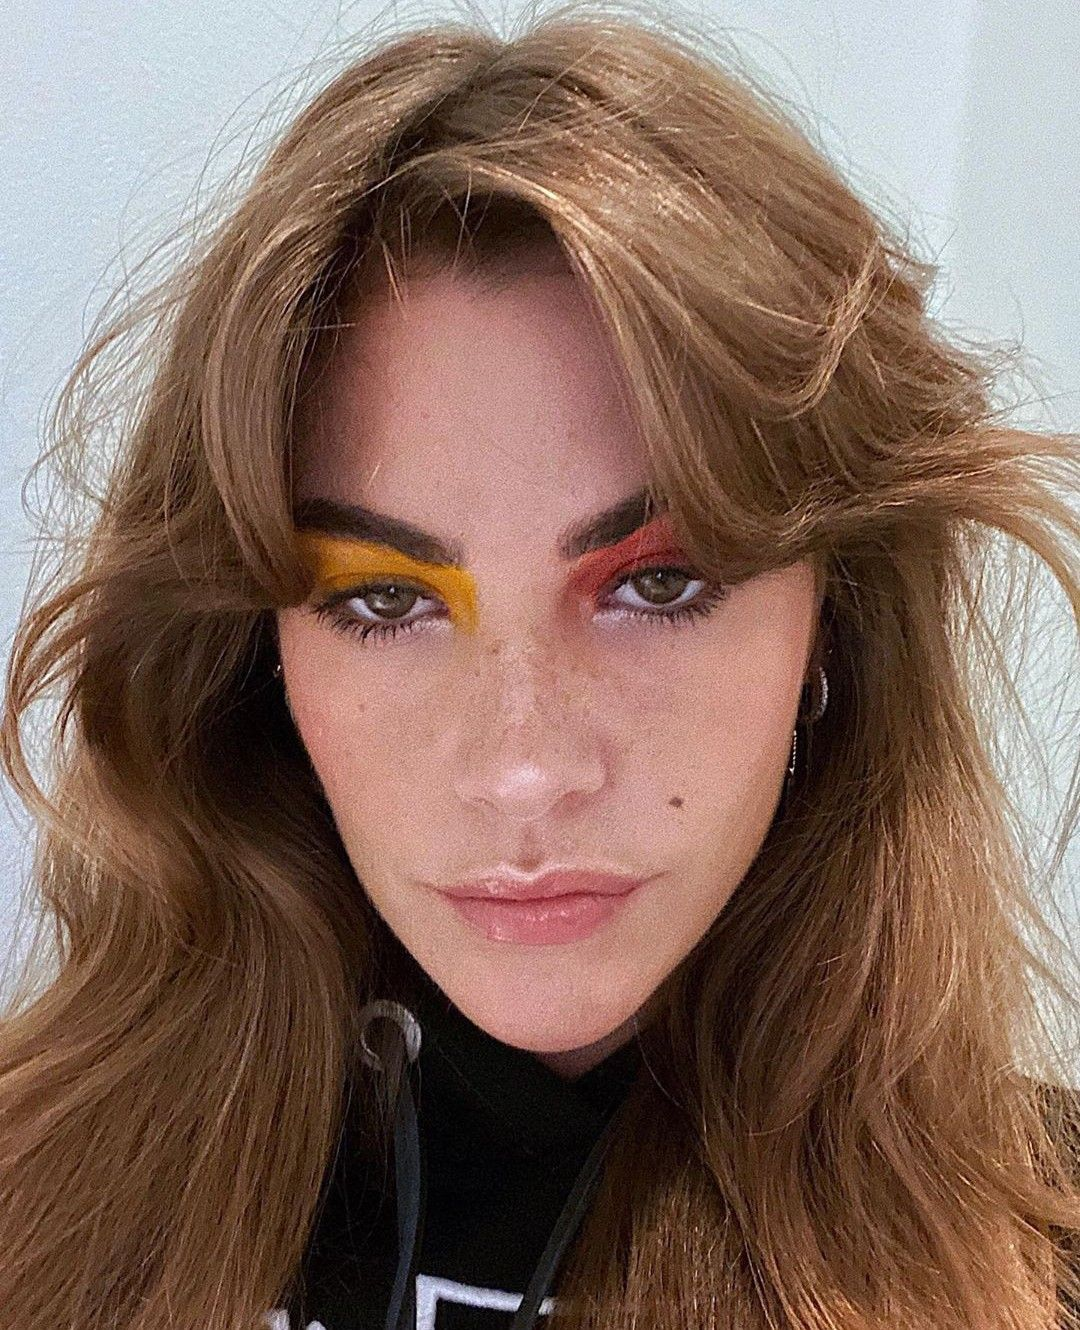 Pin by E on models/artists in 2020 Instagram, Makeup